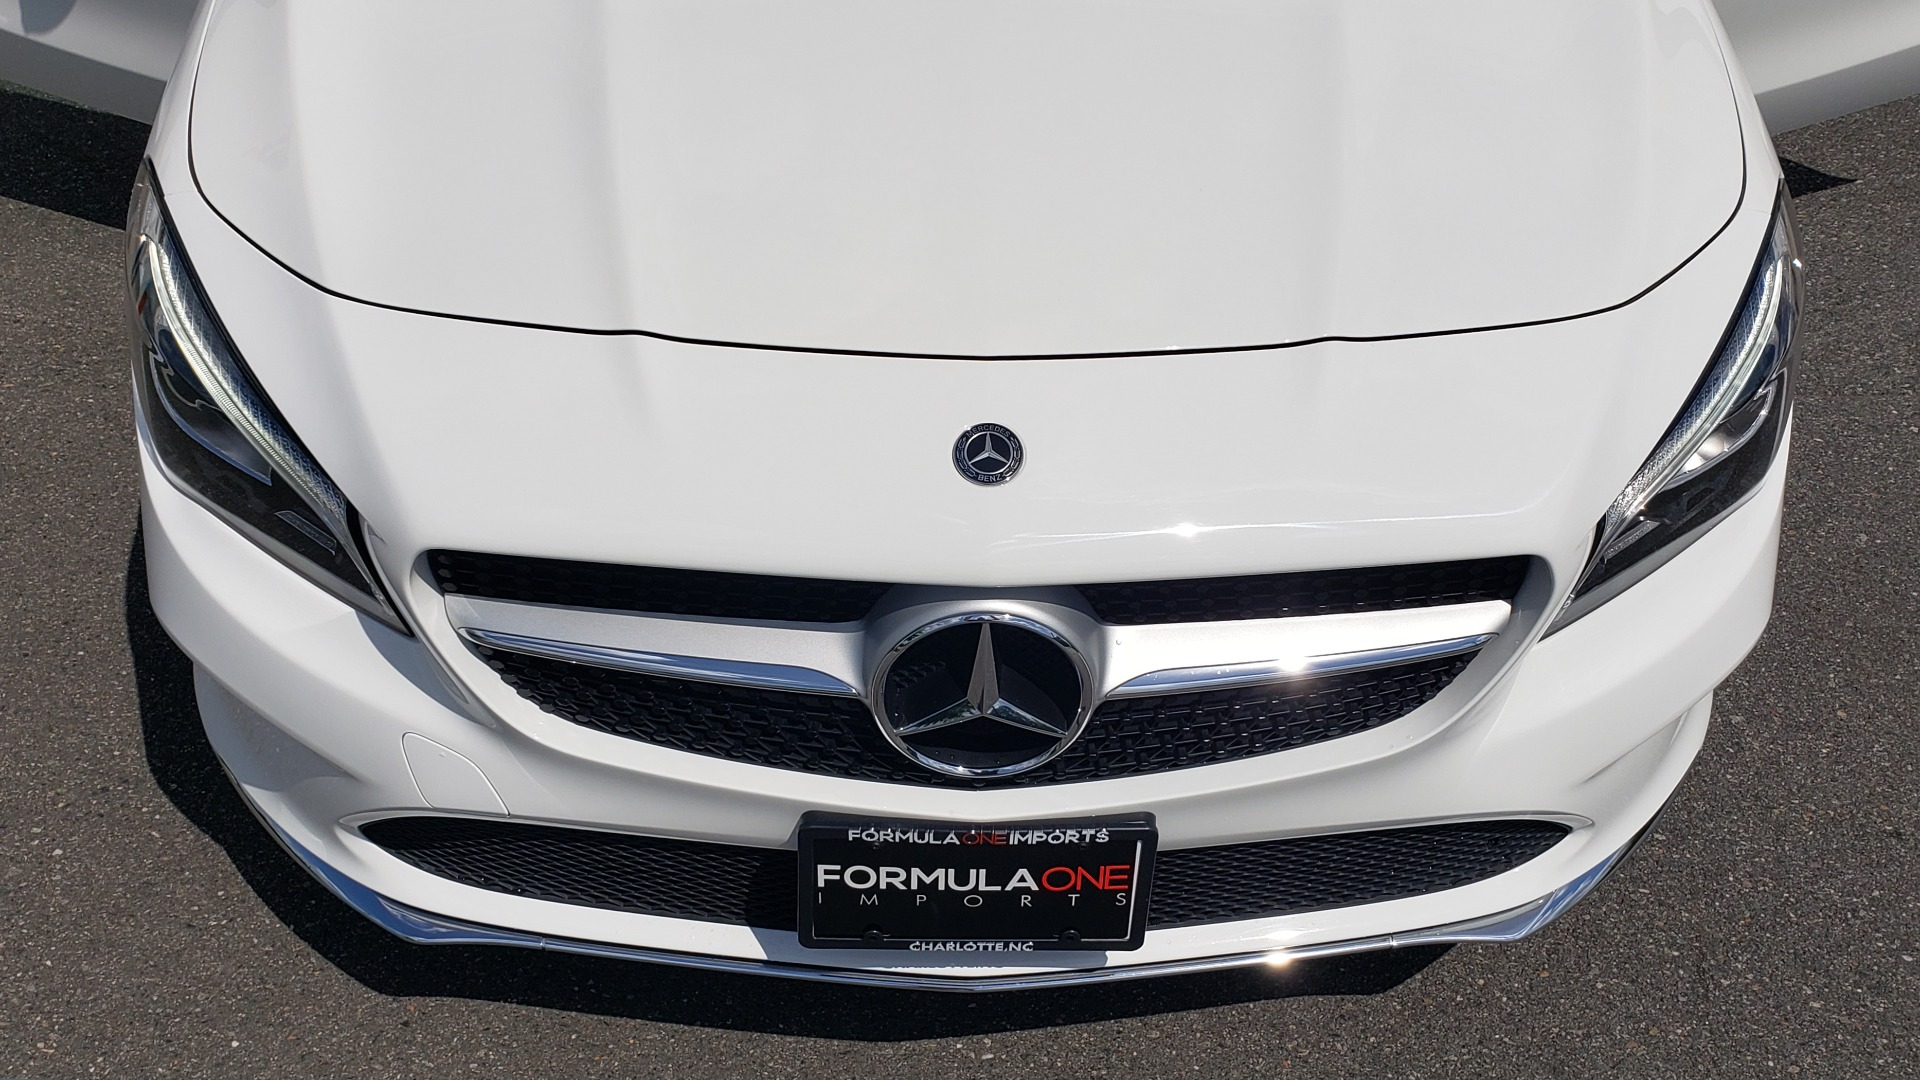 Used 2018 Mercedes-Benz CLA 250 4MATIC COUPE / PREMIUM / PANO-ROOF / APPLE / REARVIEW for sale Sold at Formula Imports in Charlotte NC 28227 26